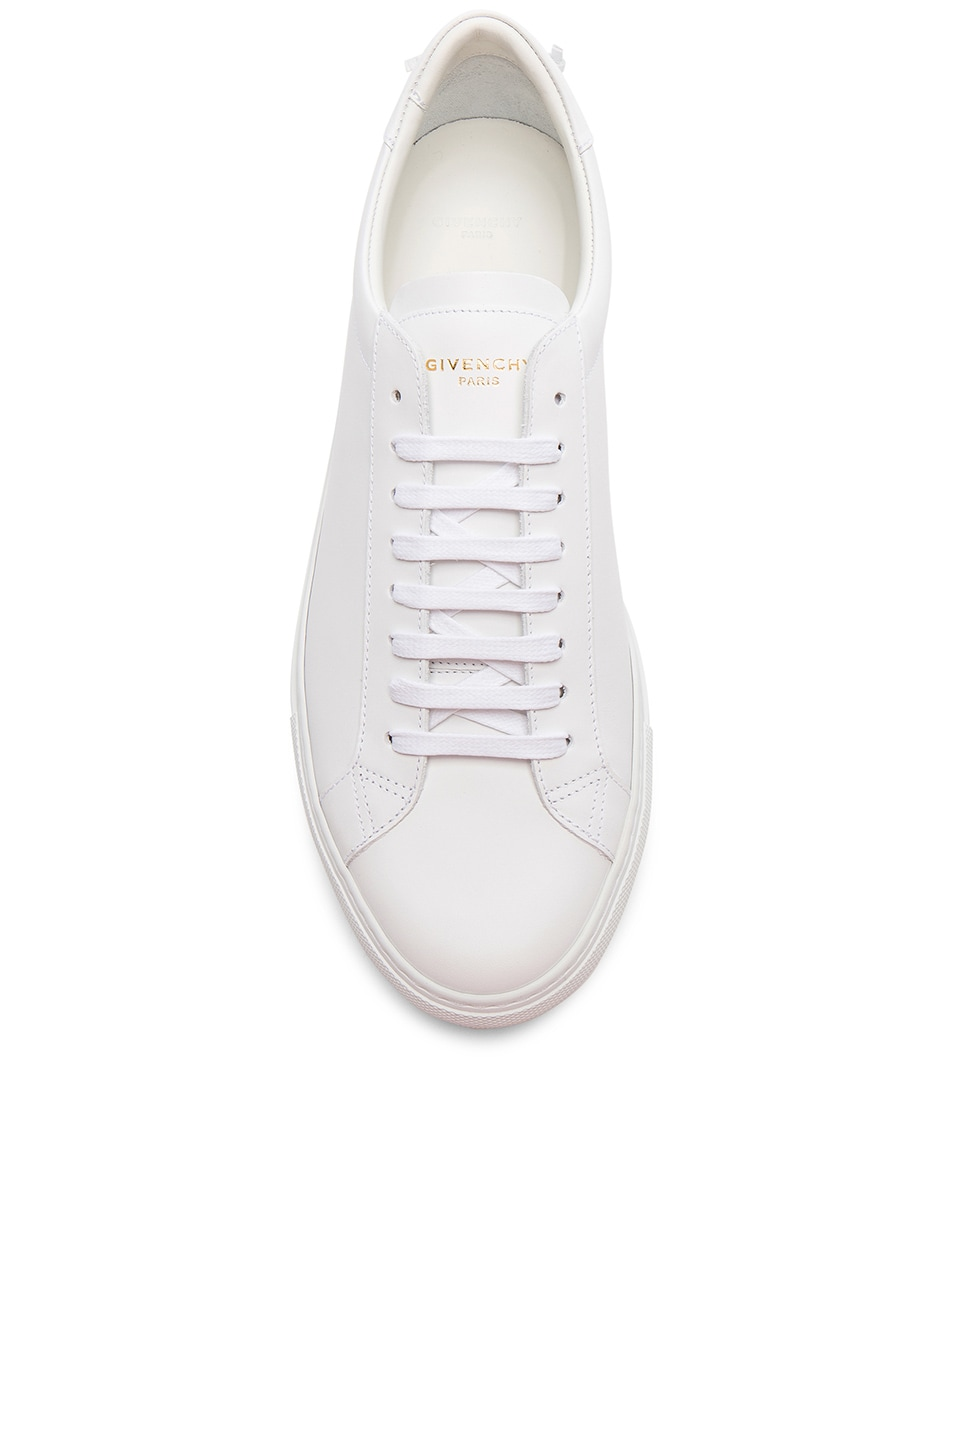 Image 4 of Givenchy Leather Urban Tie Knot Sneakers in White